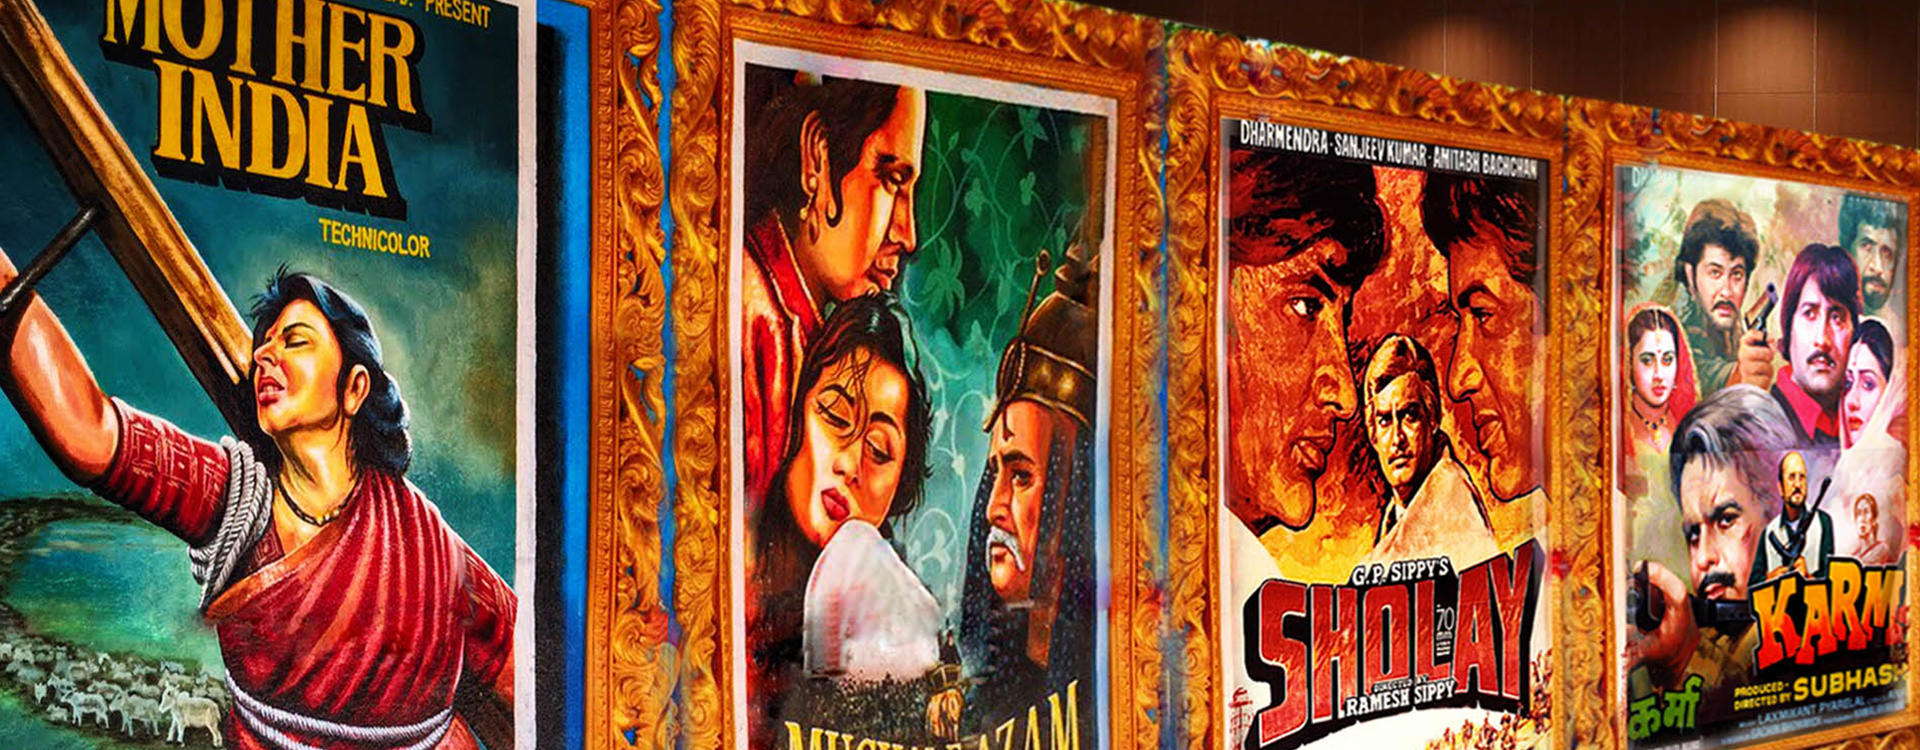 LE-Mumbai_Bollywood-Film-City-Tour